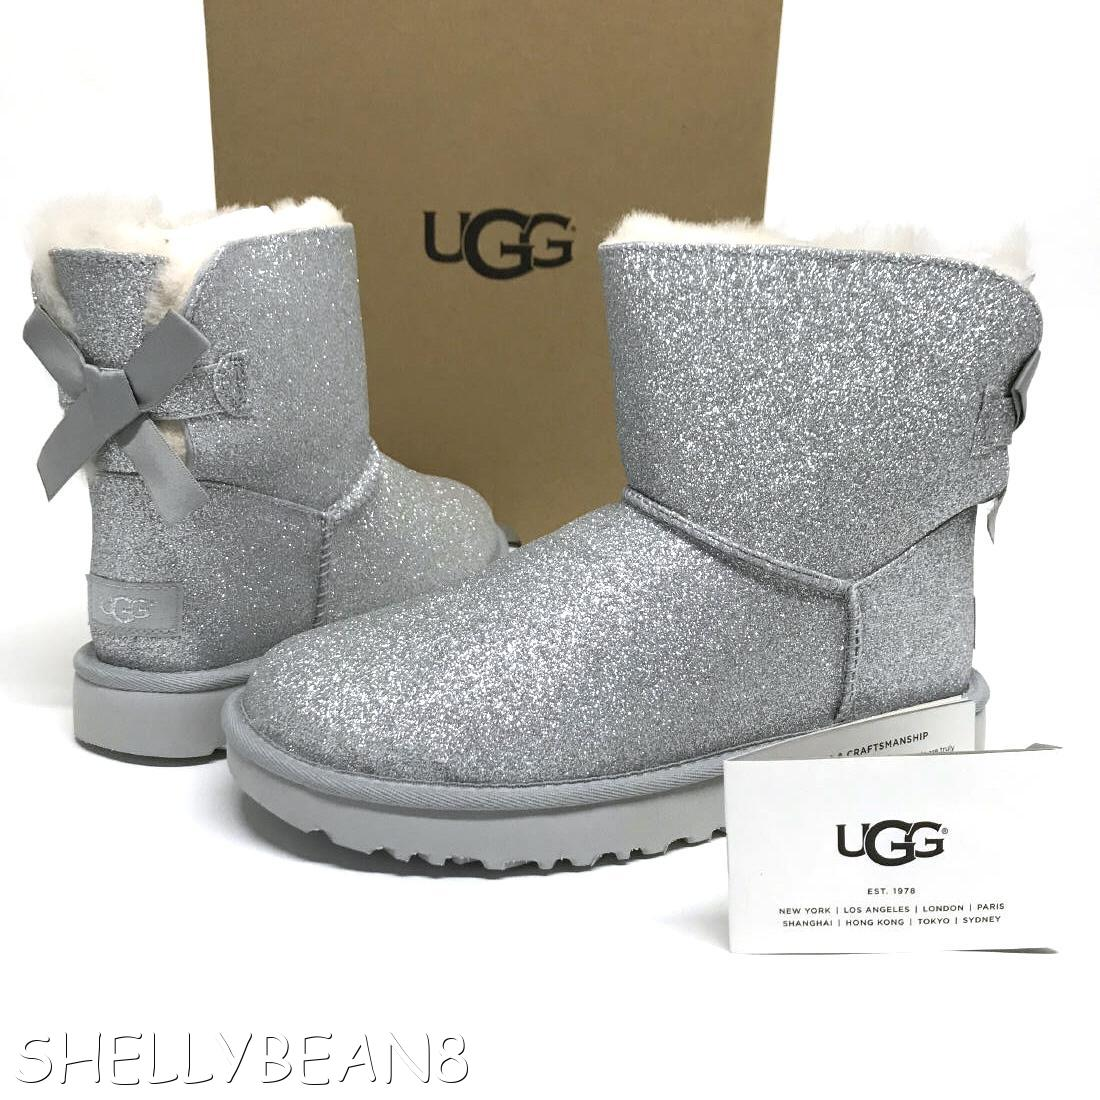 99edce9087e Details about UGG Mini BAILEY BOW SPARKLE Glitter Boots Booties SHEARLING  Fur LINED 7 NEW NIB